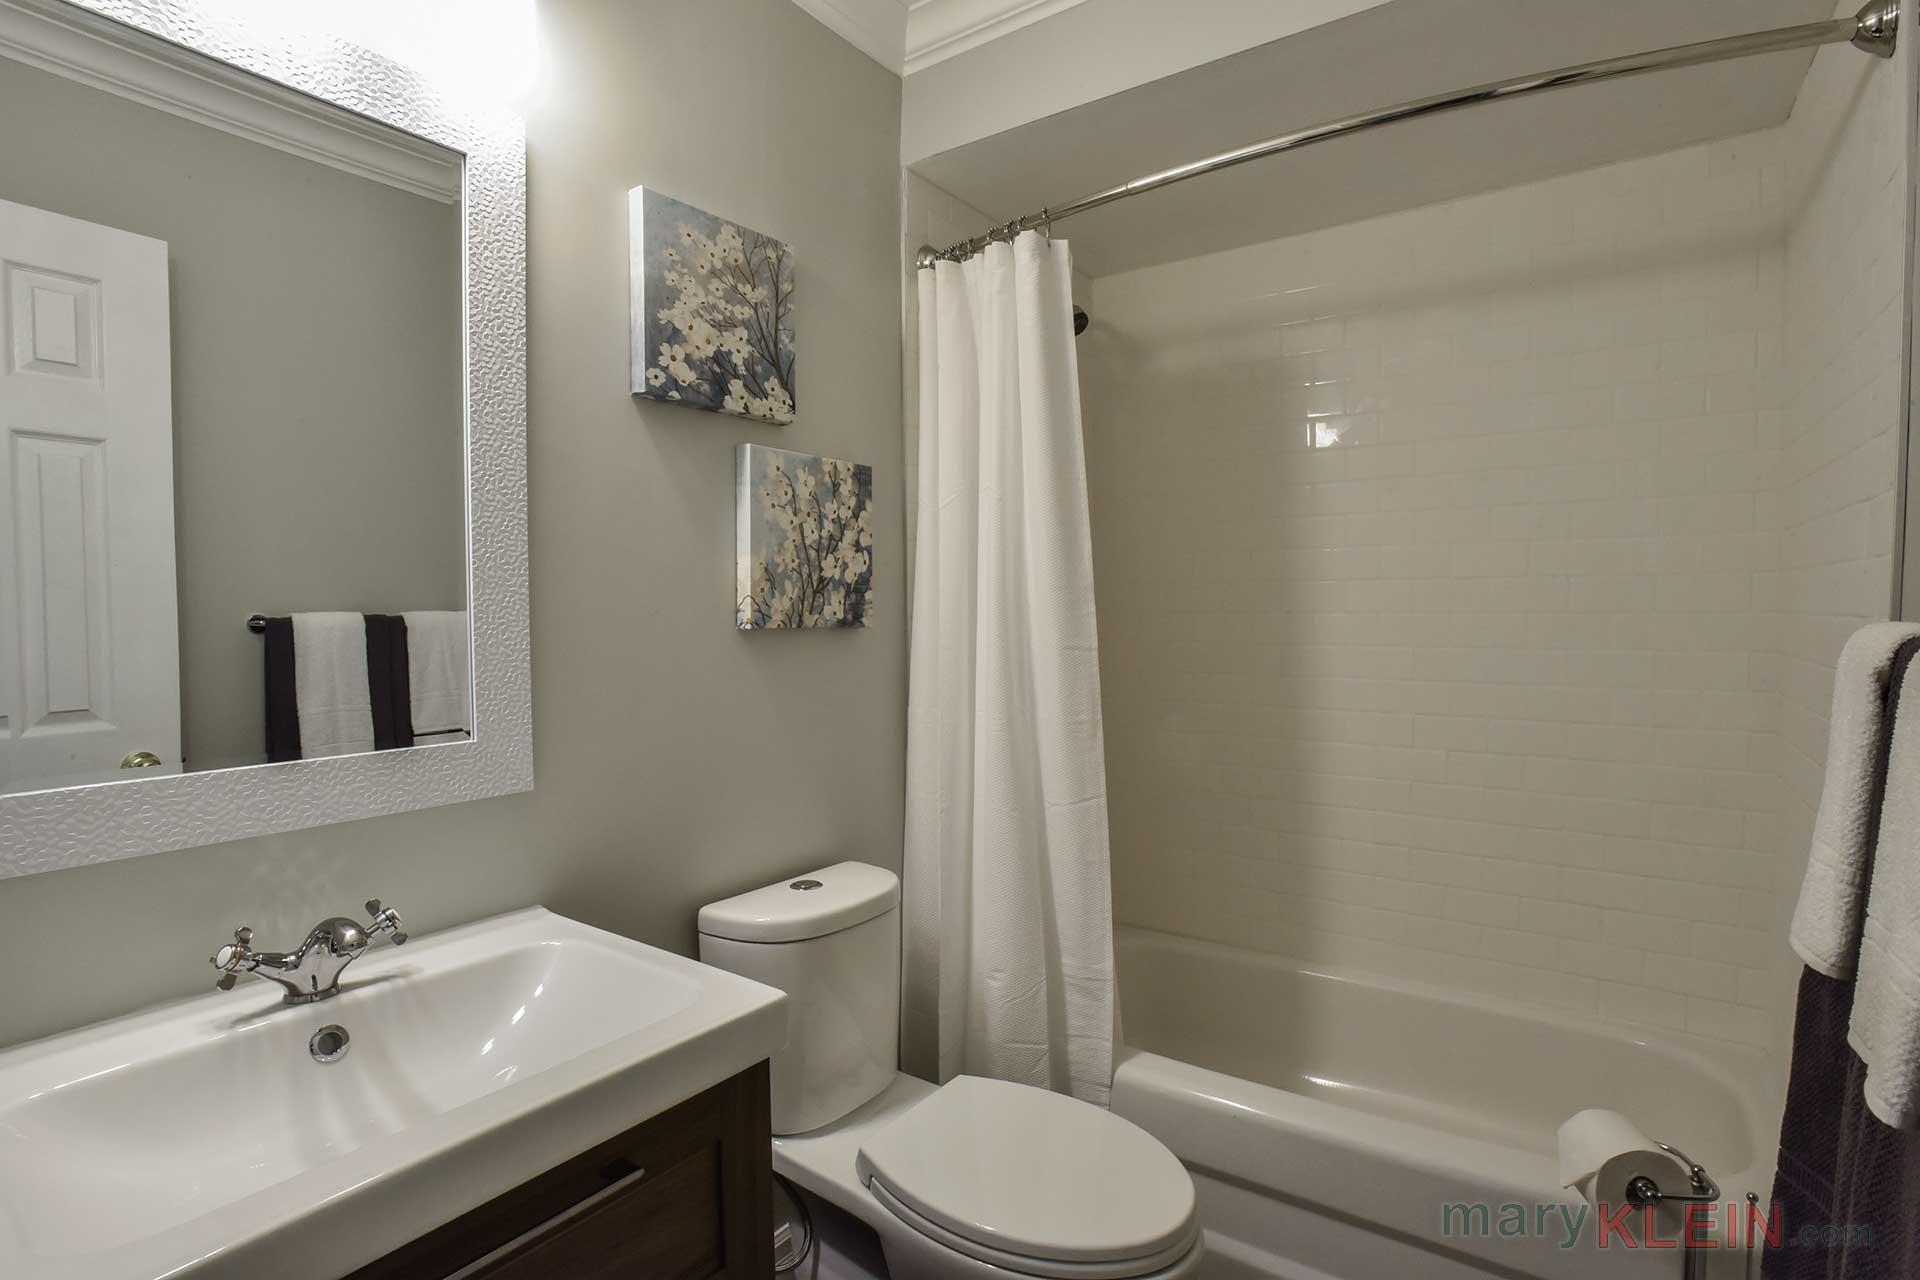 renovated, updated 4-piece bathroom